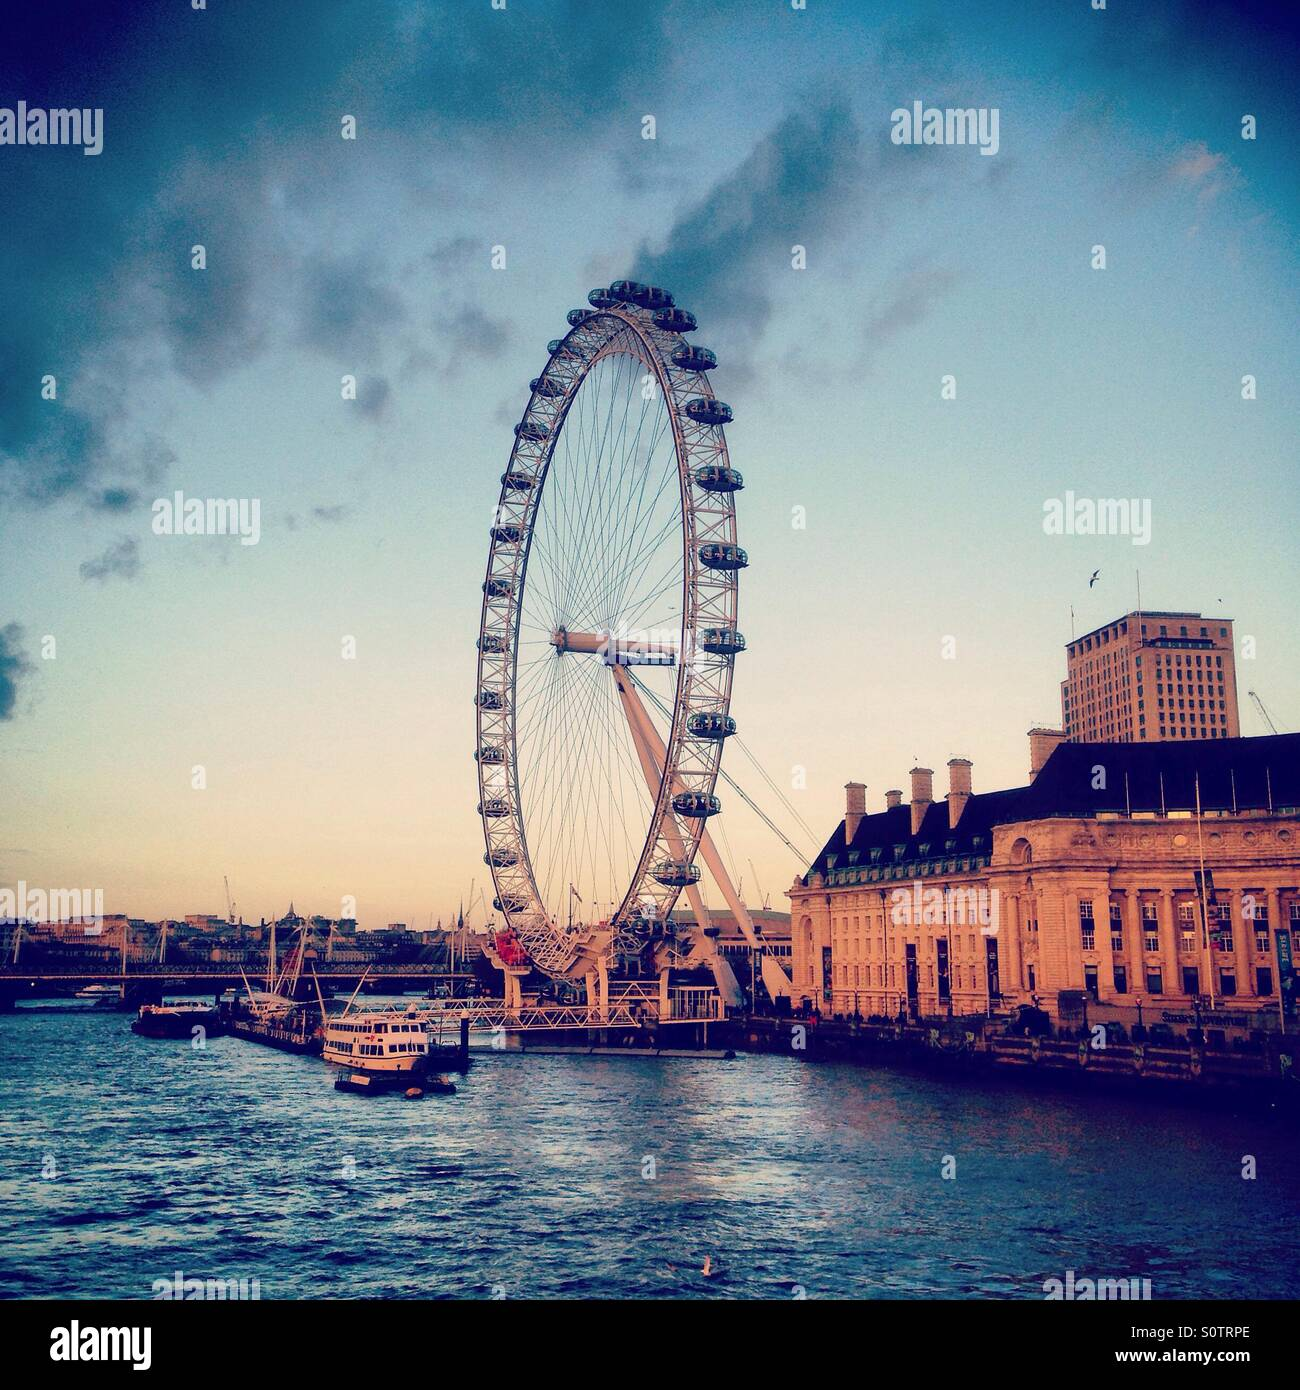 The London Eye, Ferris Wheel on the South Bank of the River Thames, London, UK. - Stock Image